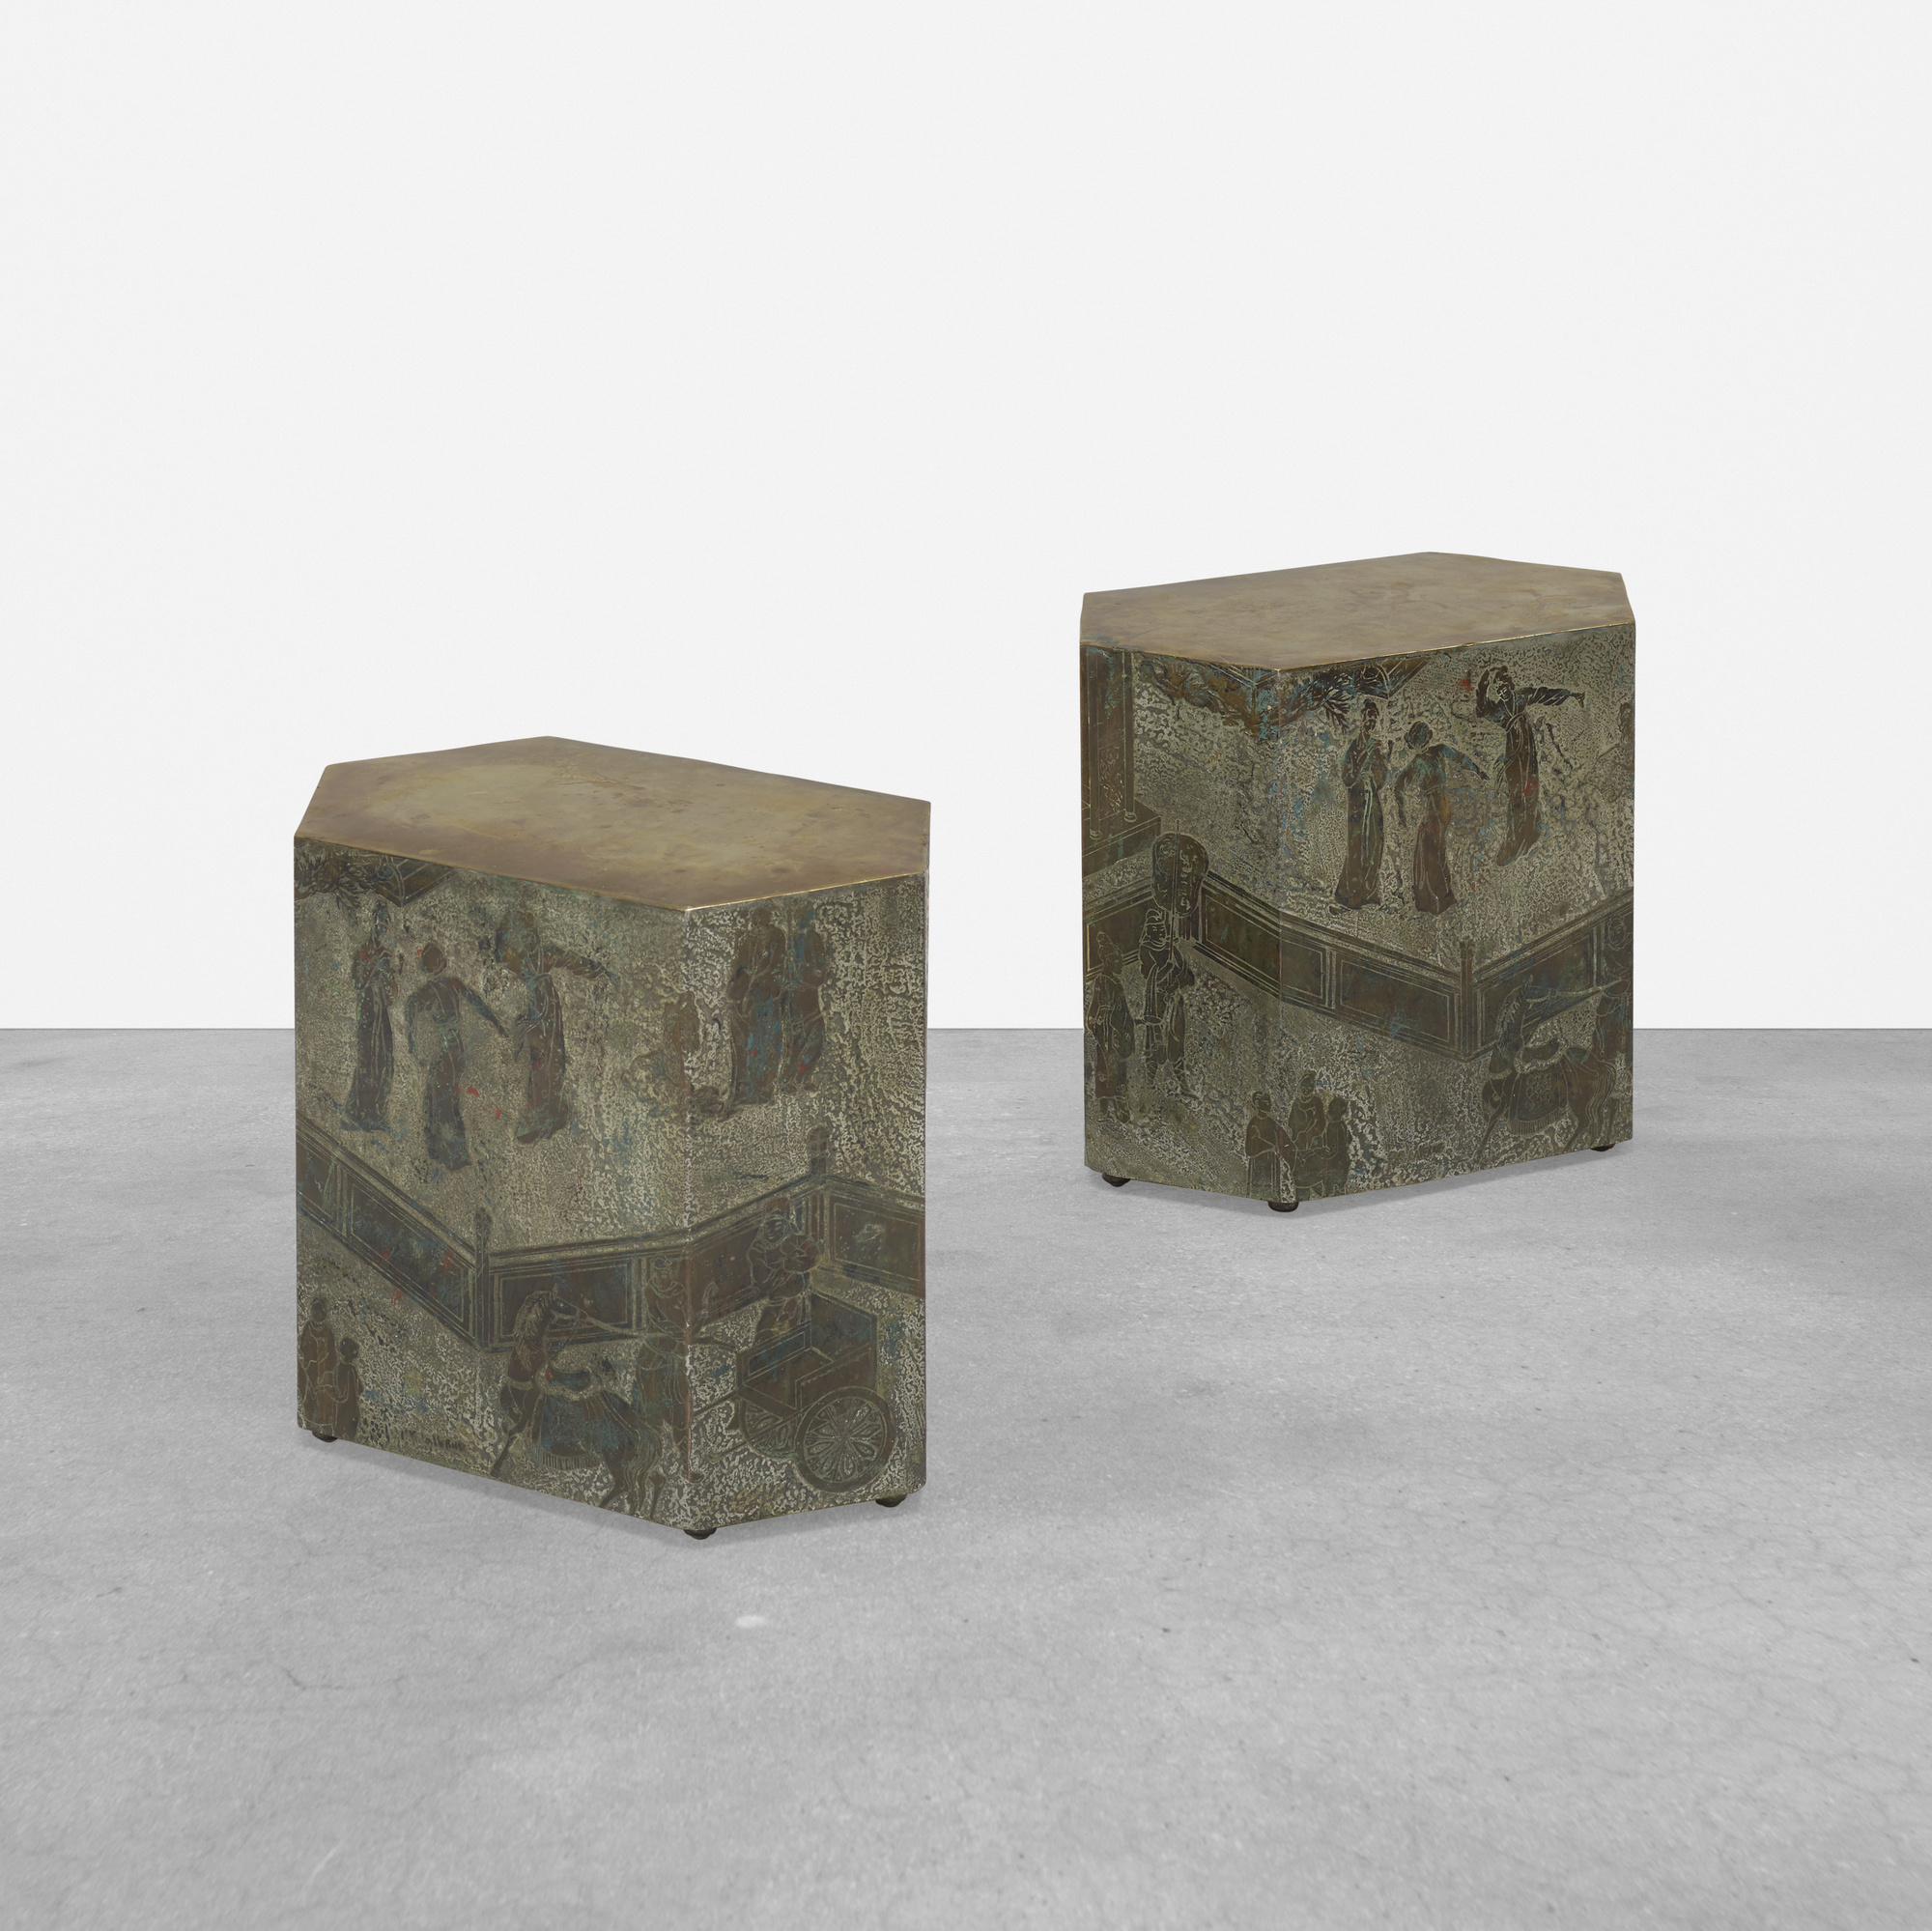 402: Philip and Kelvin LaVerne / Chan occasional tables, pair (1 of 5)